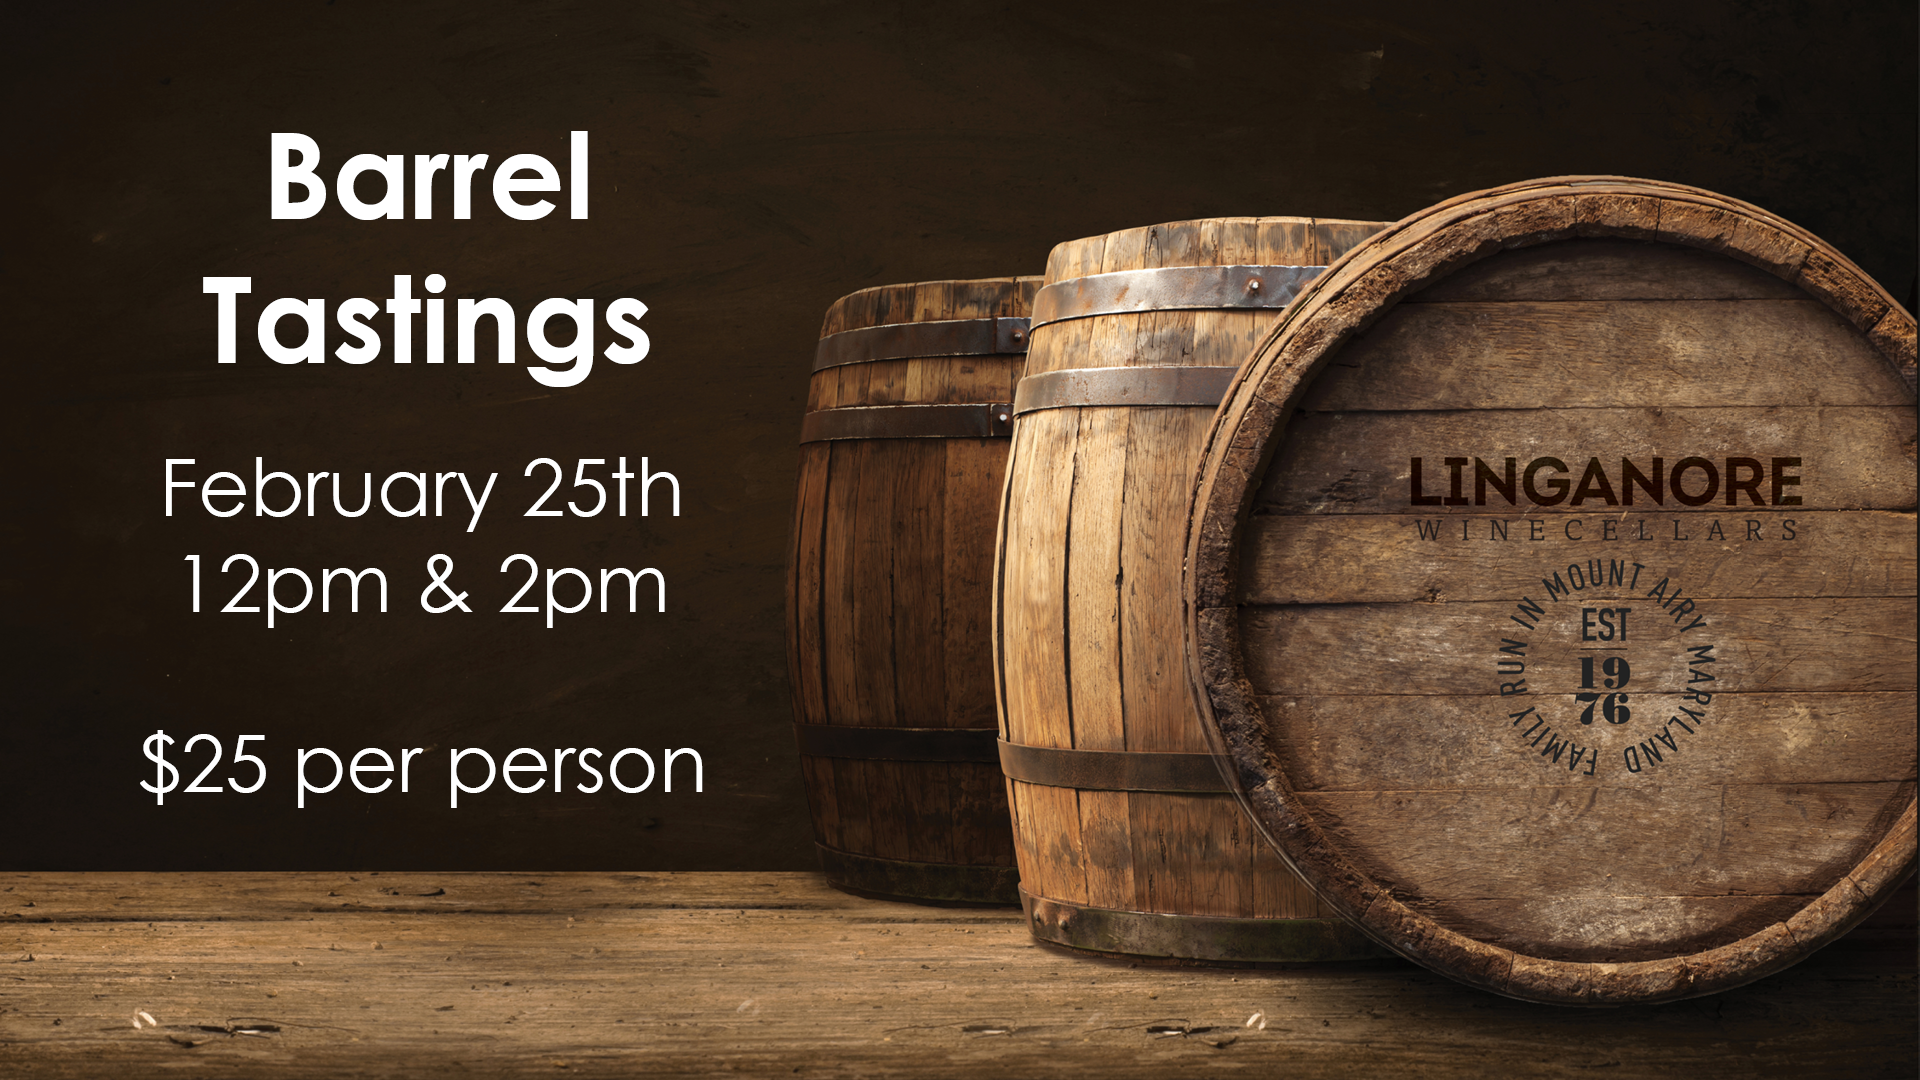 Barrel Tastings- Things to Do Frederick MD